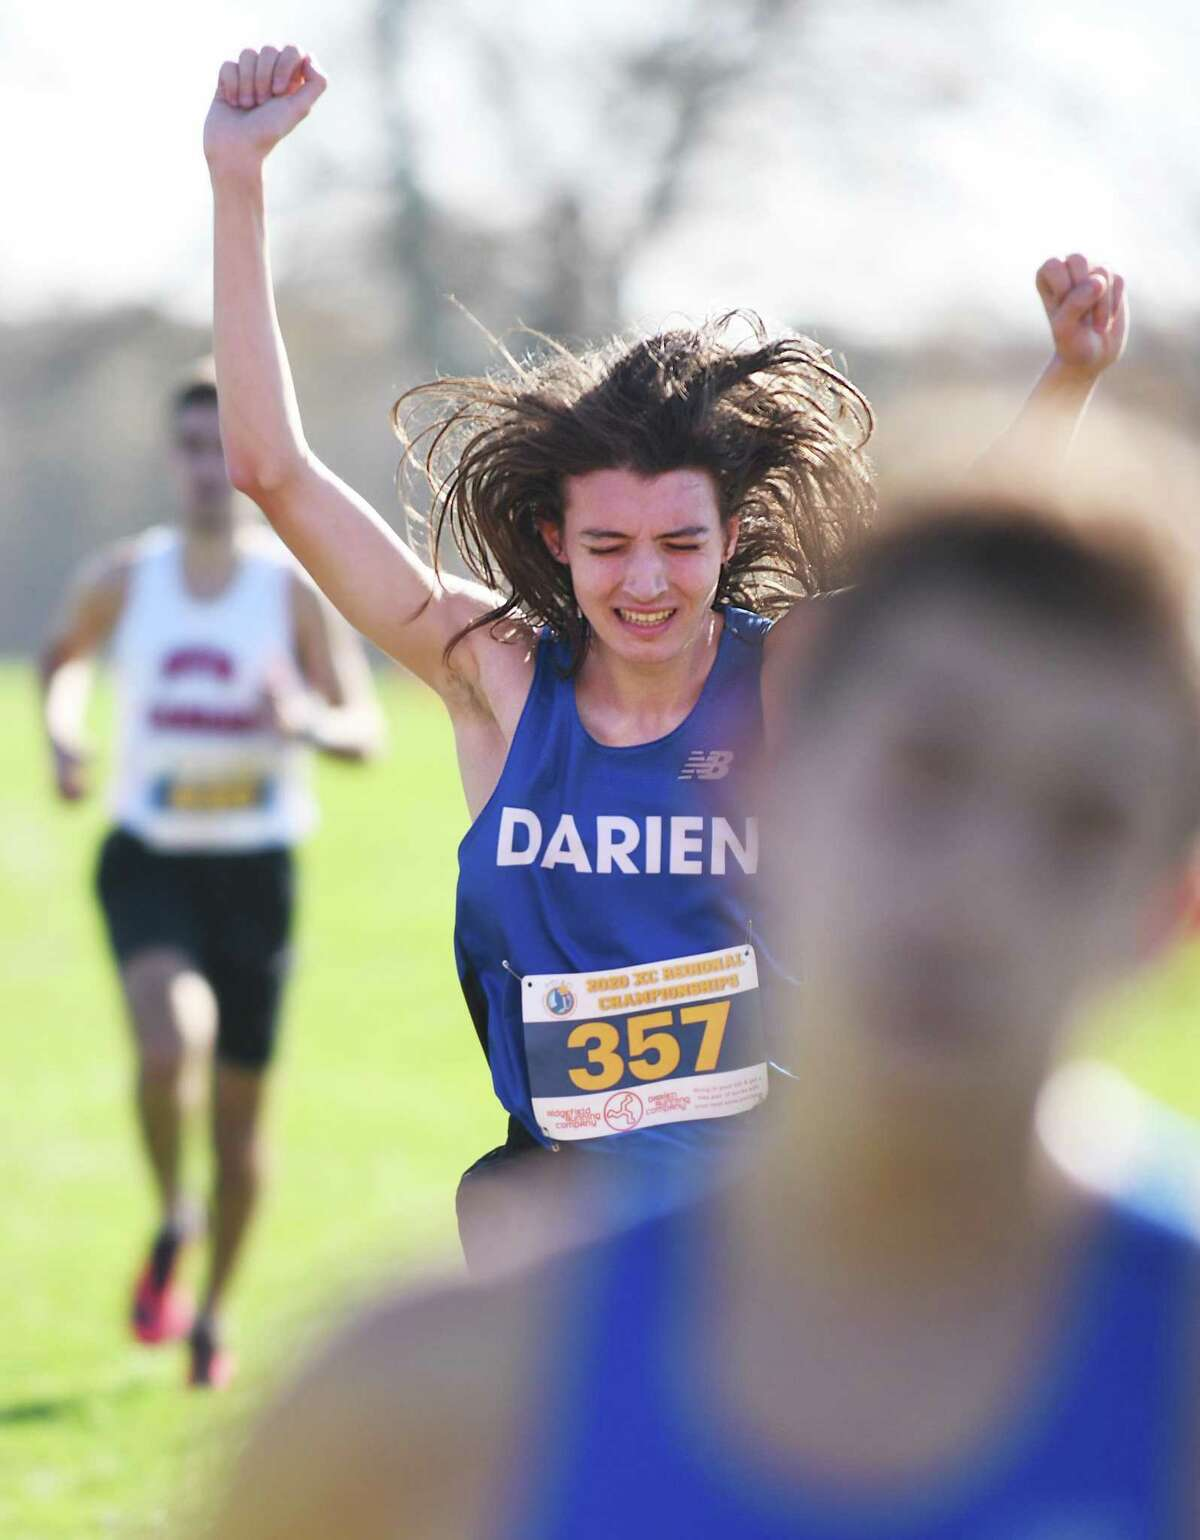 Darien's Evan O'Rourke crosses the finish line with a time of 17:08 to take fourth place in the West Region heat of the FCIAC boys cross country championship at Waveny Park in New Canaan on Nov. 4.